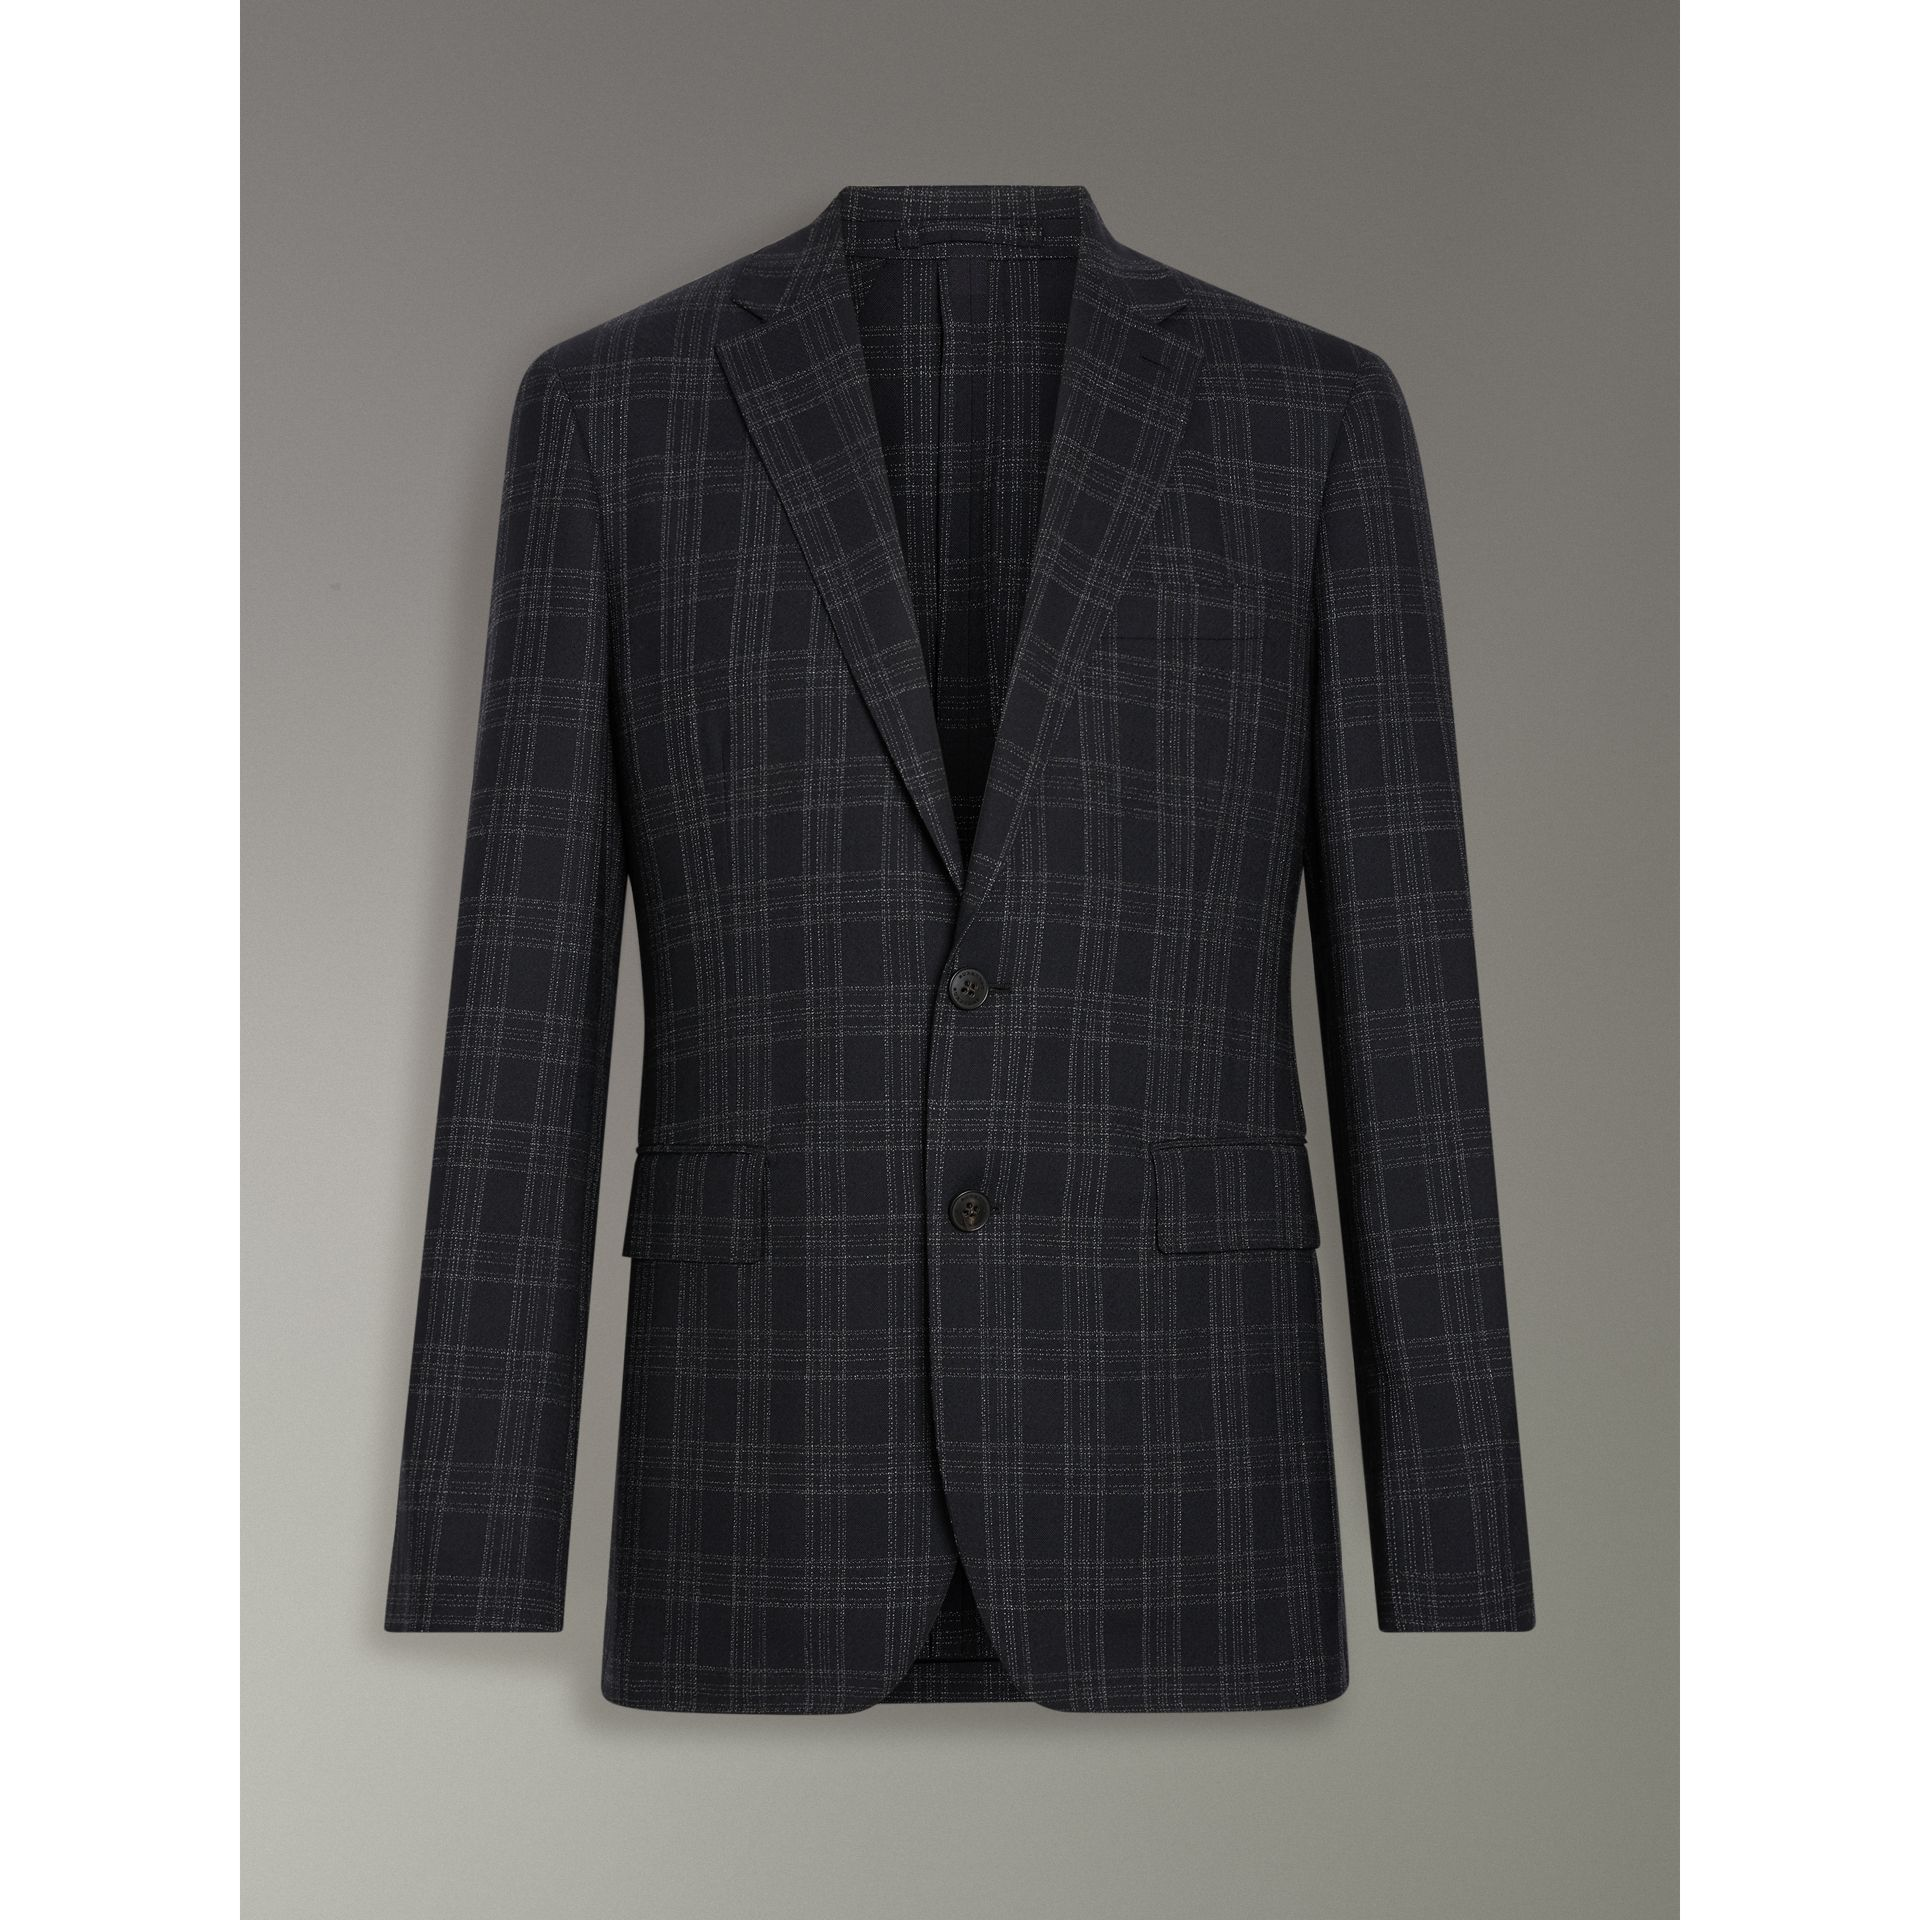 Costume de coupe Soho en laine à motif check (Noir) - Homme | Burberry - photo de la galerie 3